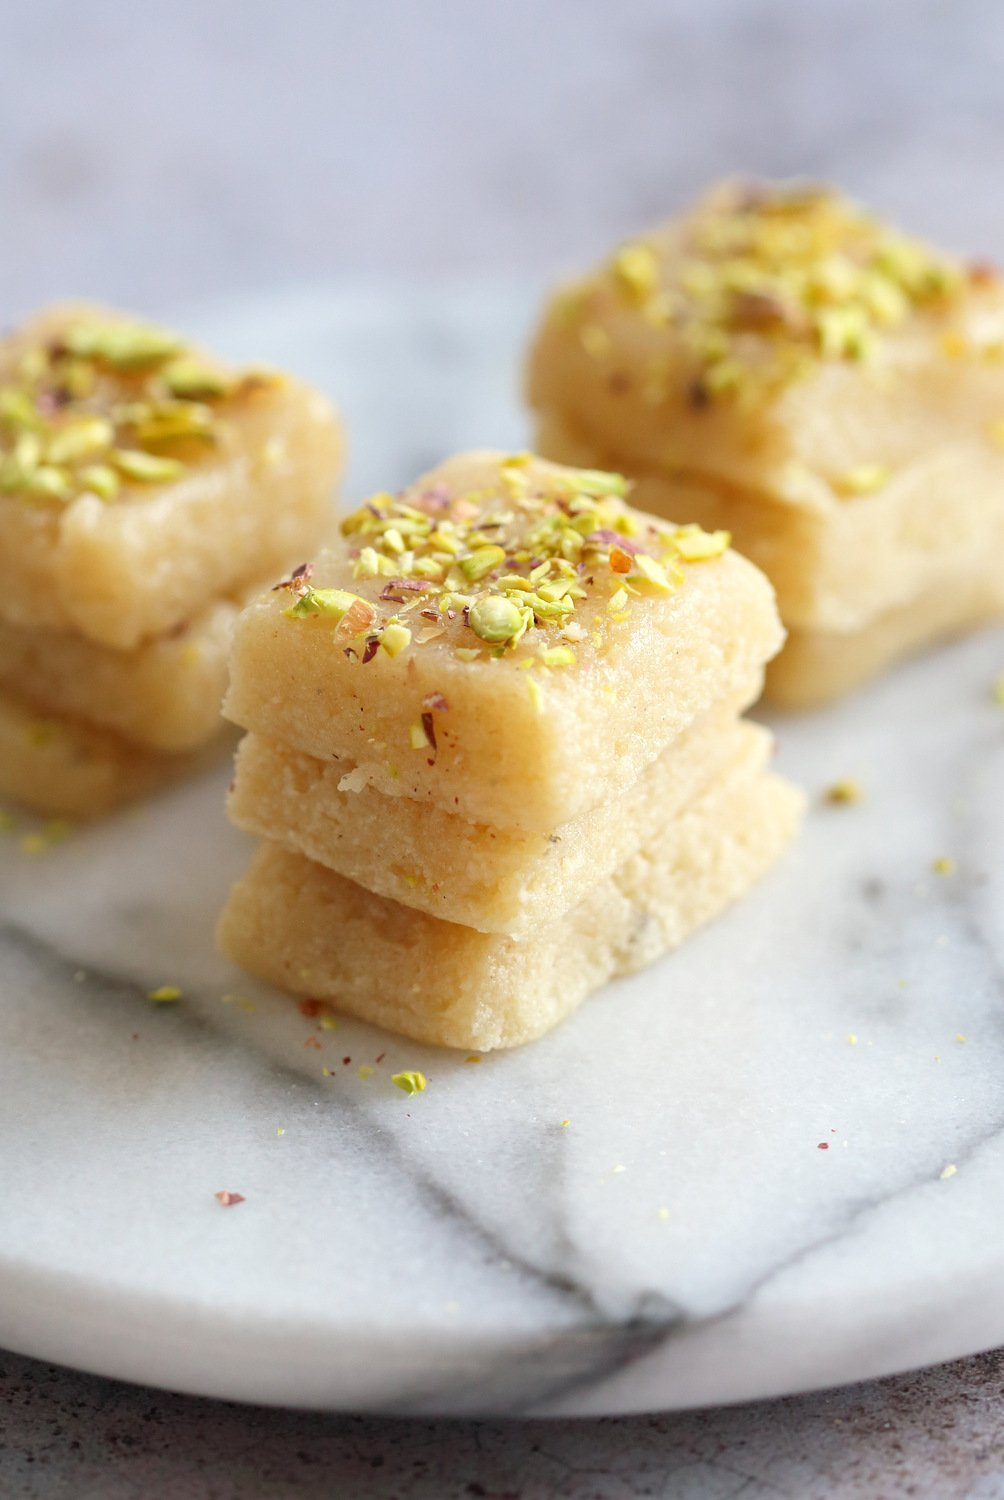 Vegan Malai Burfi (Milk Cake)- Indian Fudge Bars. Dairy free Burfi For Indian Festivals. Creamy Cardamom Fudge. #VeganRicha #Vegan #Glutenfree #Soyfree #Recipe.